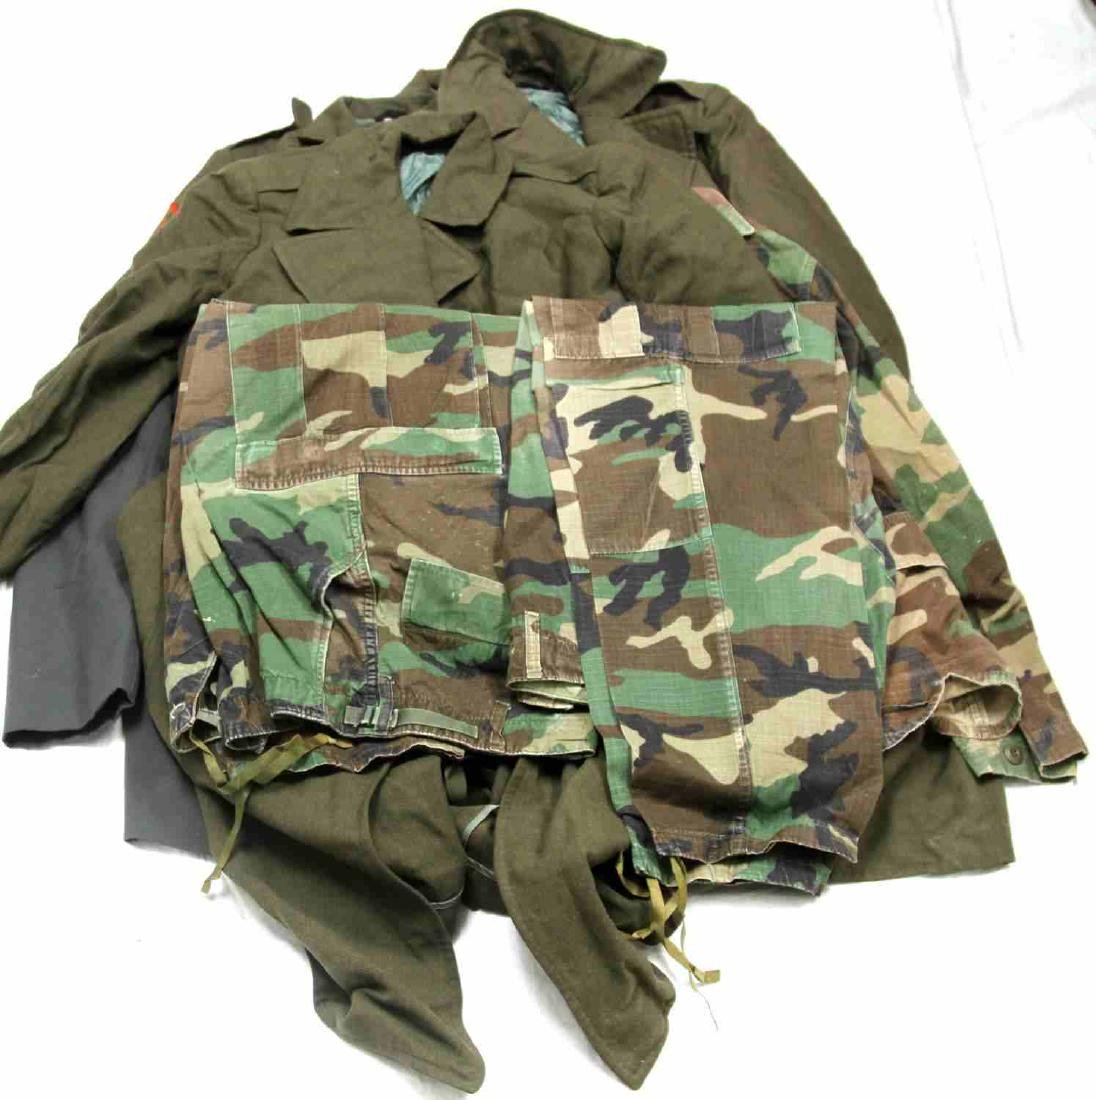 US MILITARY MULTI TIME PERIOD & BRANCH UNIFORM LOT